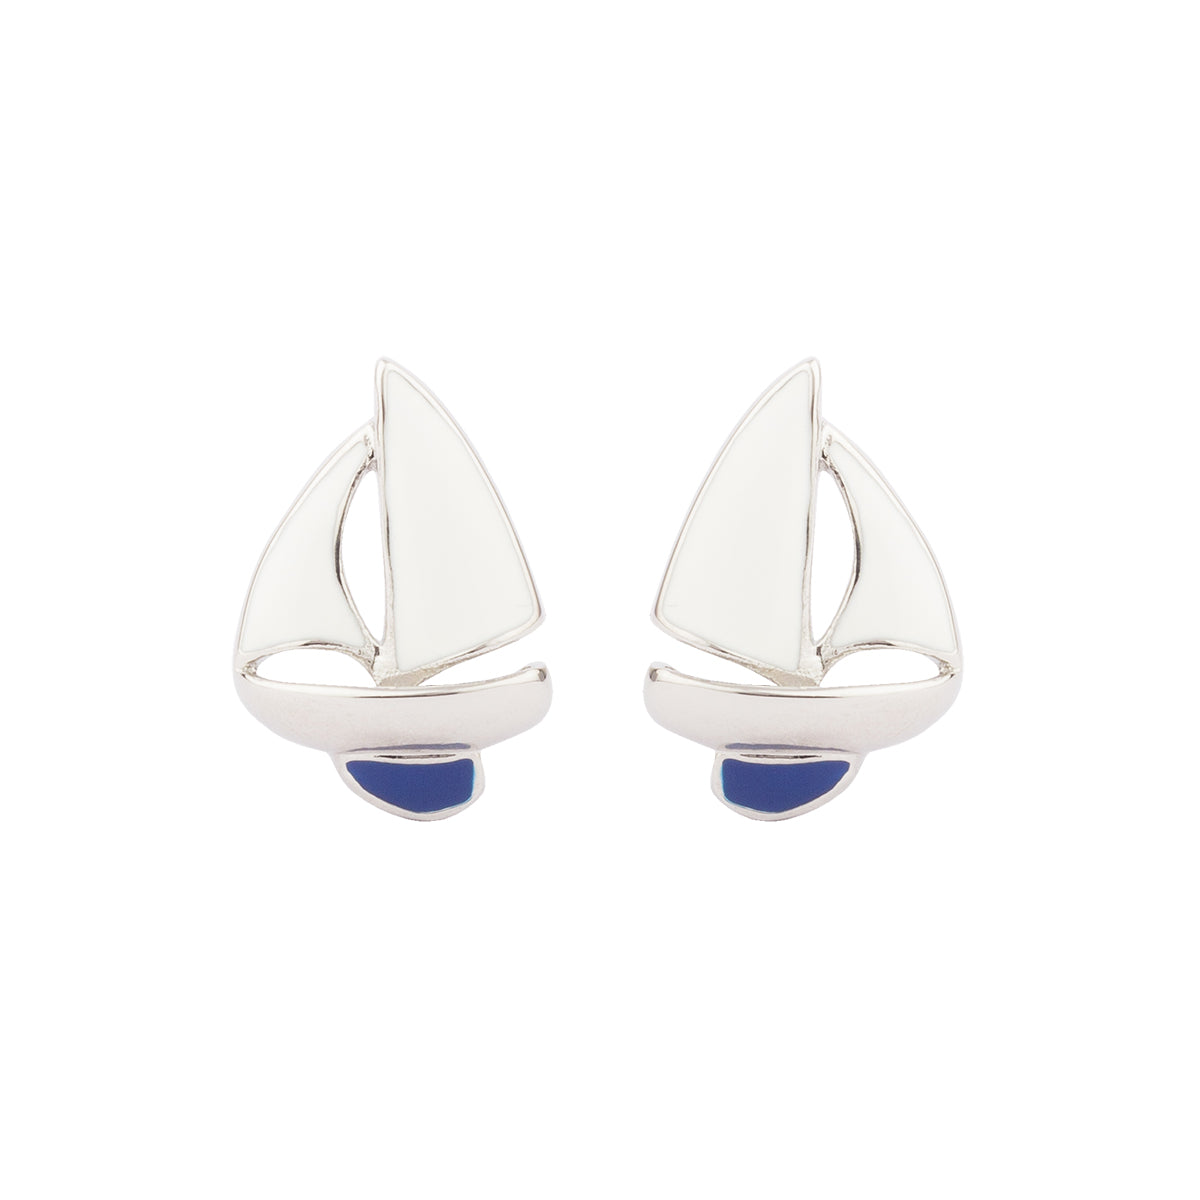 Set your style spirit free and intertwine in wonder with the winds as they catch the sails of this unconventional set of cufflinks.